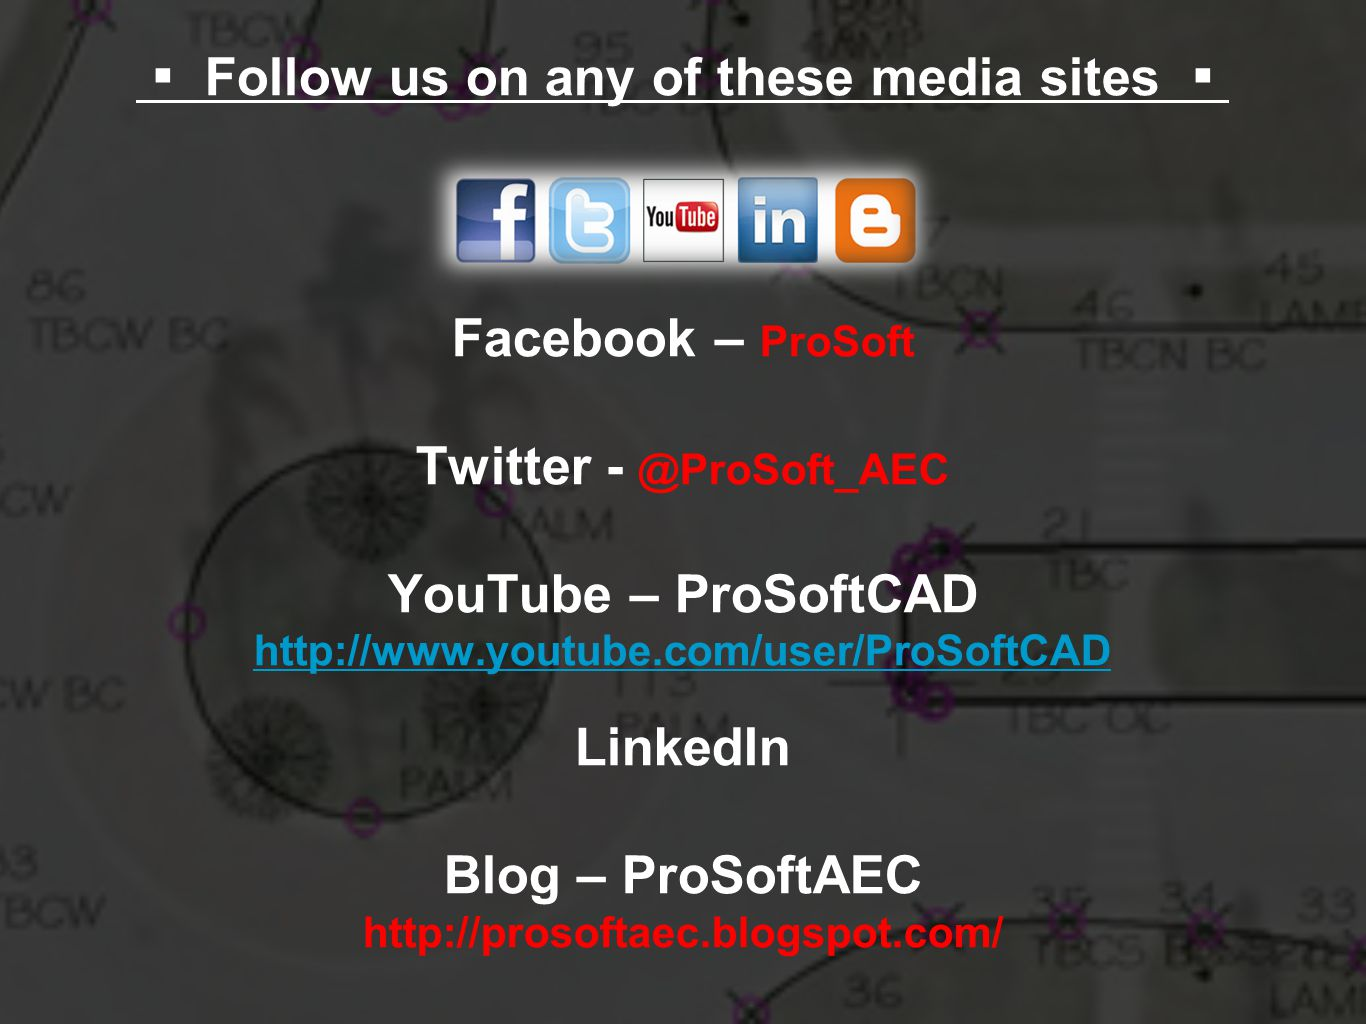 ▪ Follow us on any of these media sites ▪ Facebook – ProSoft Twitter - @ProSoft_AEC YouTube – ProSoftCAD http://www.youtube.com/user/ProSoftCAD LinkedIn Blog – ProSoftAEC http://prosoftaec.blogspot.com/